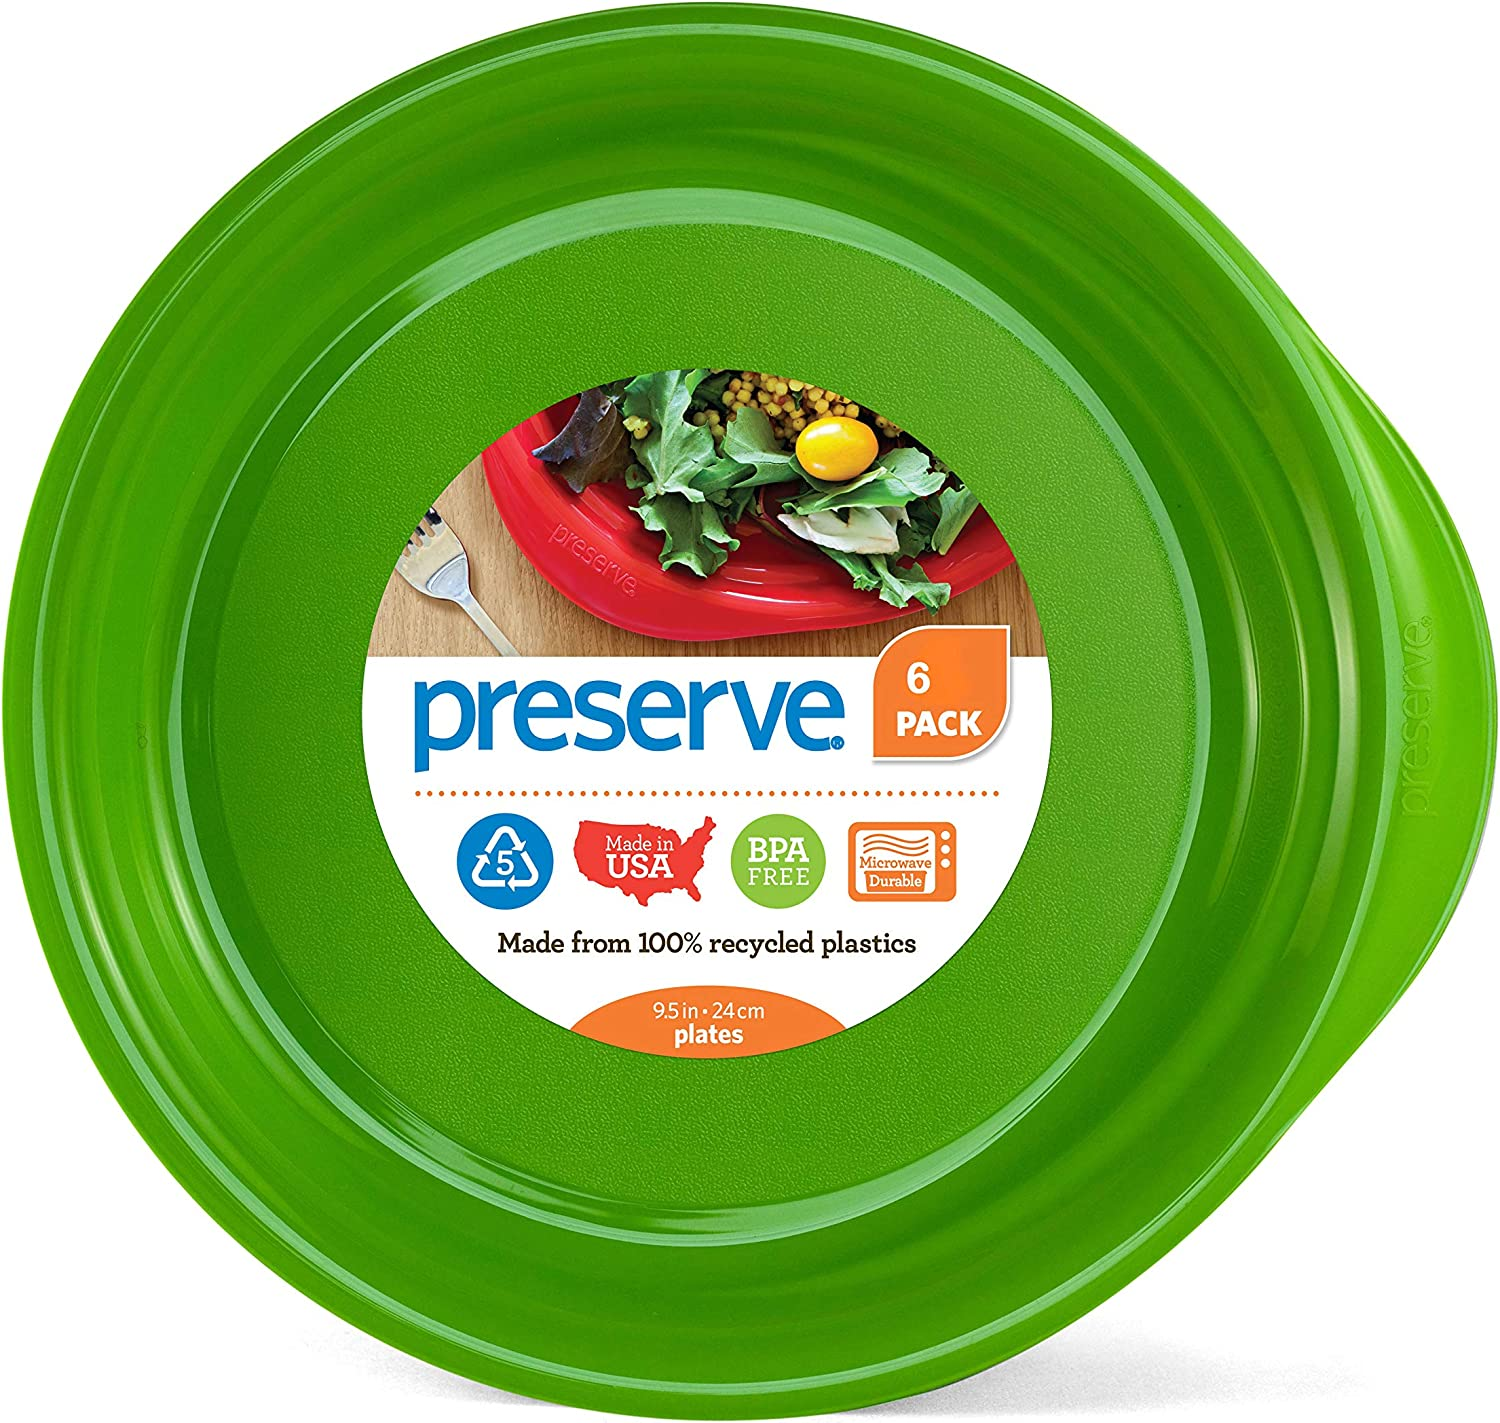 Preserve Everyday BPA Free Dinner Plates Made from Recycled Plastic in the USA, Set of 6, Apple Green